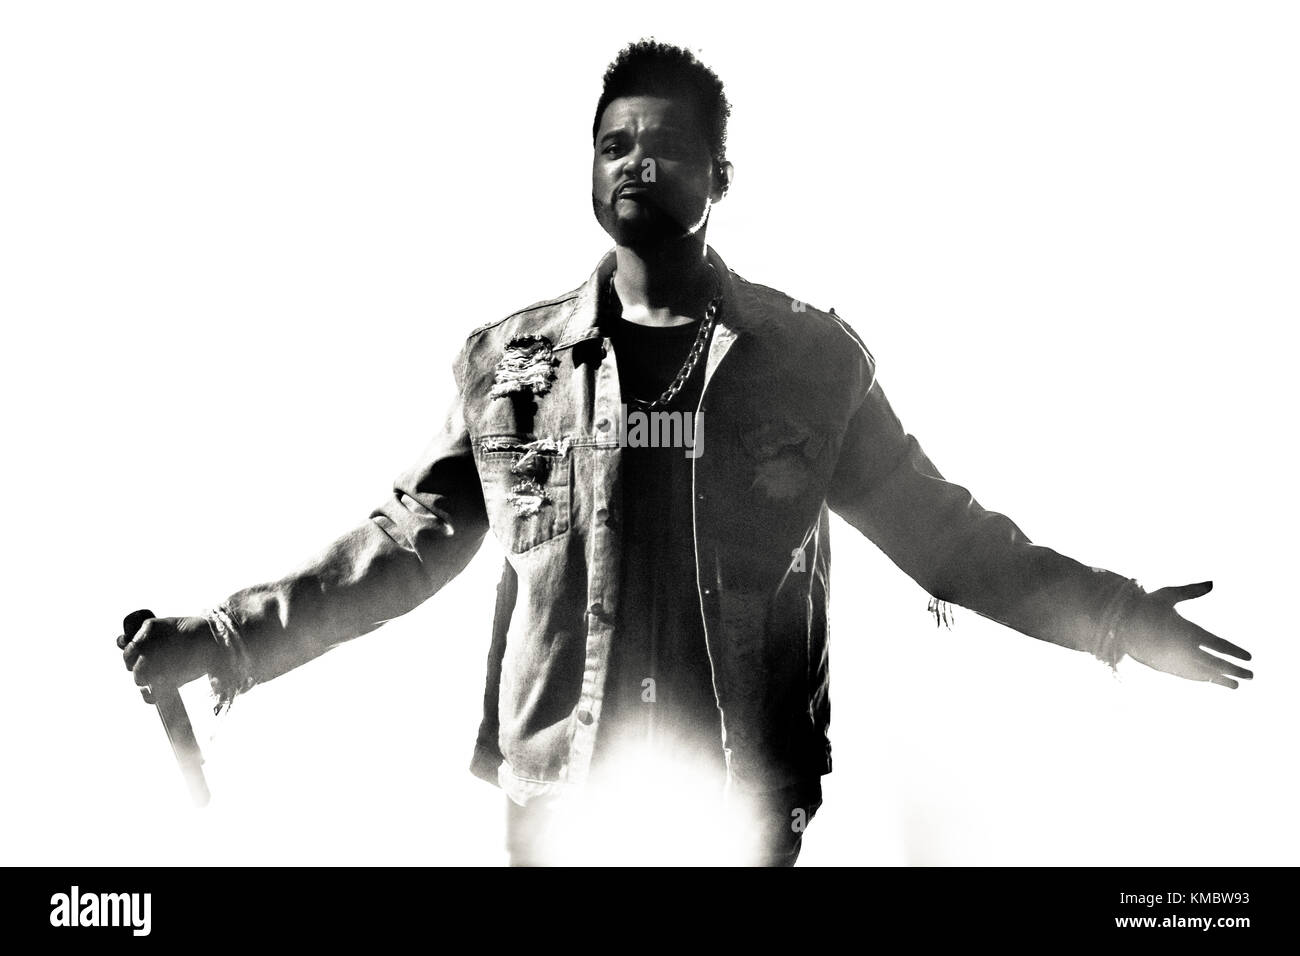 The Canadian singer, songwriter and recording artist The Weeknd performs a live concert at Lanxess Arena in Cologne. - Stock Image